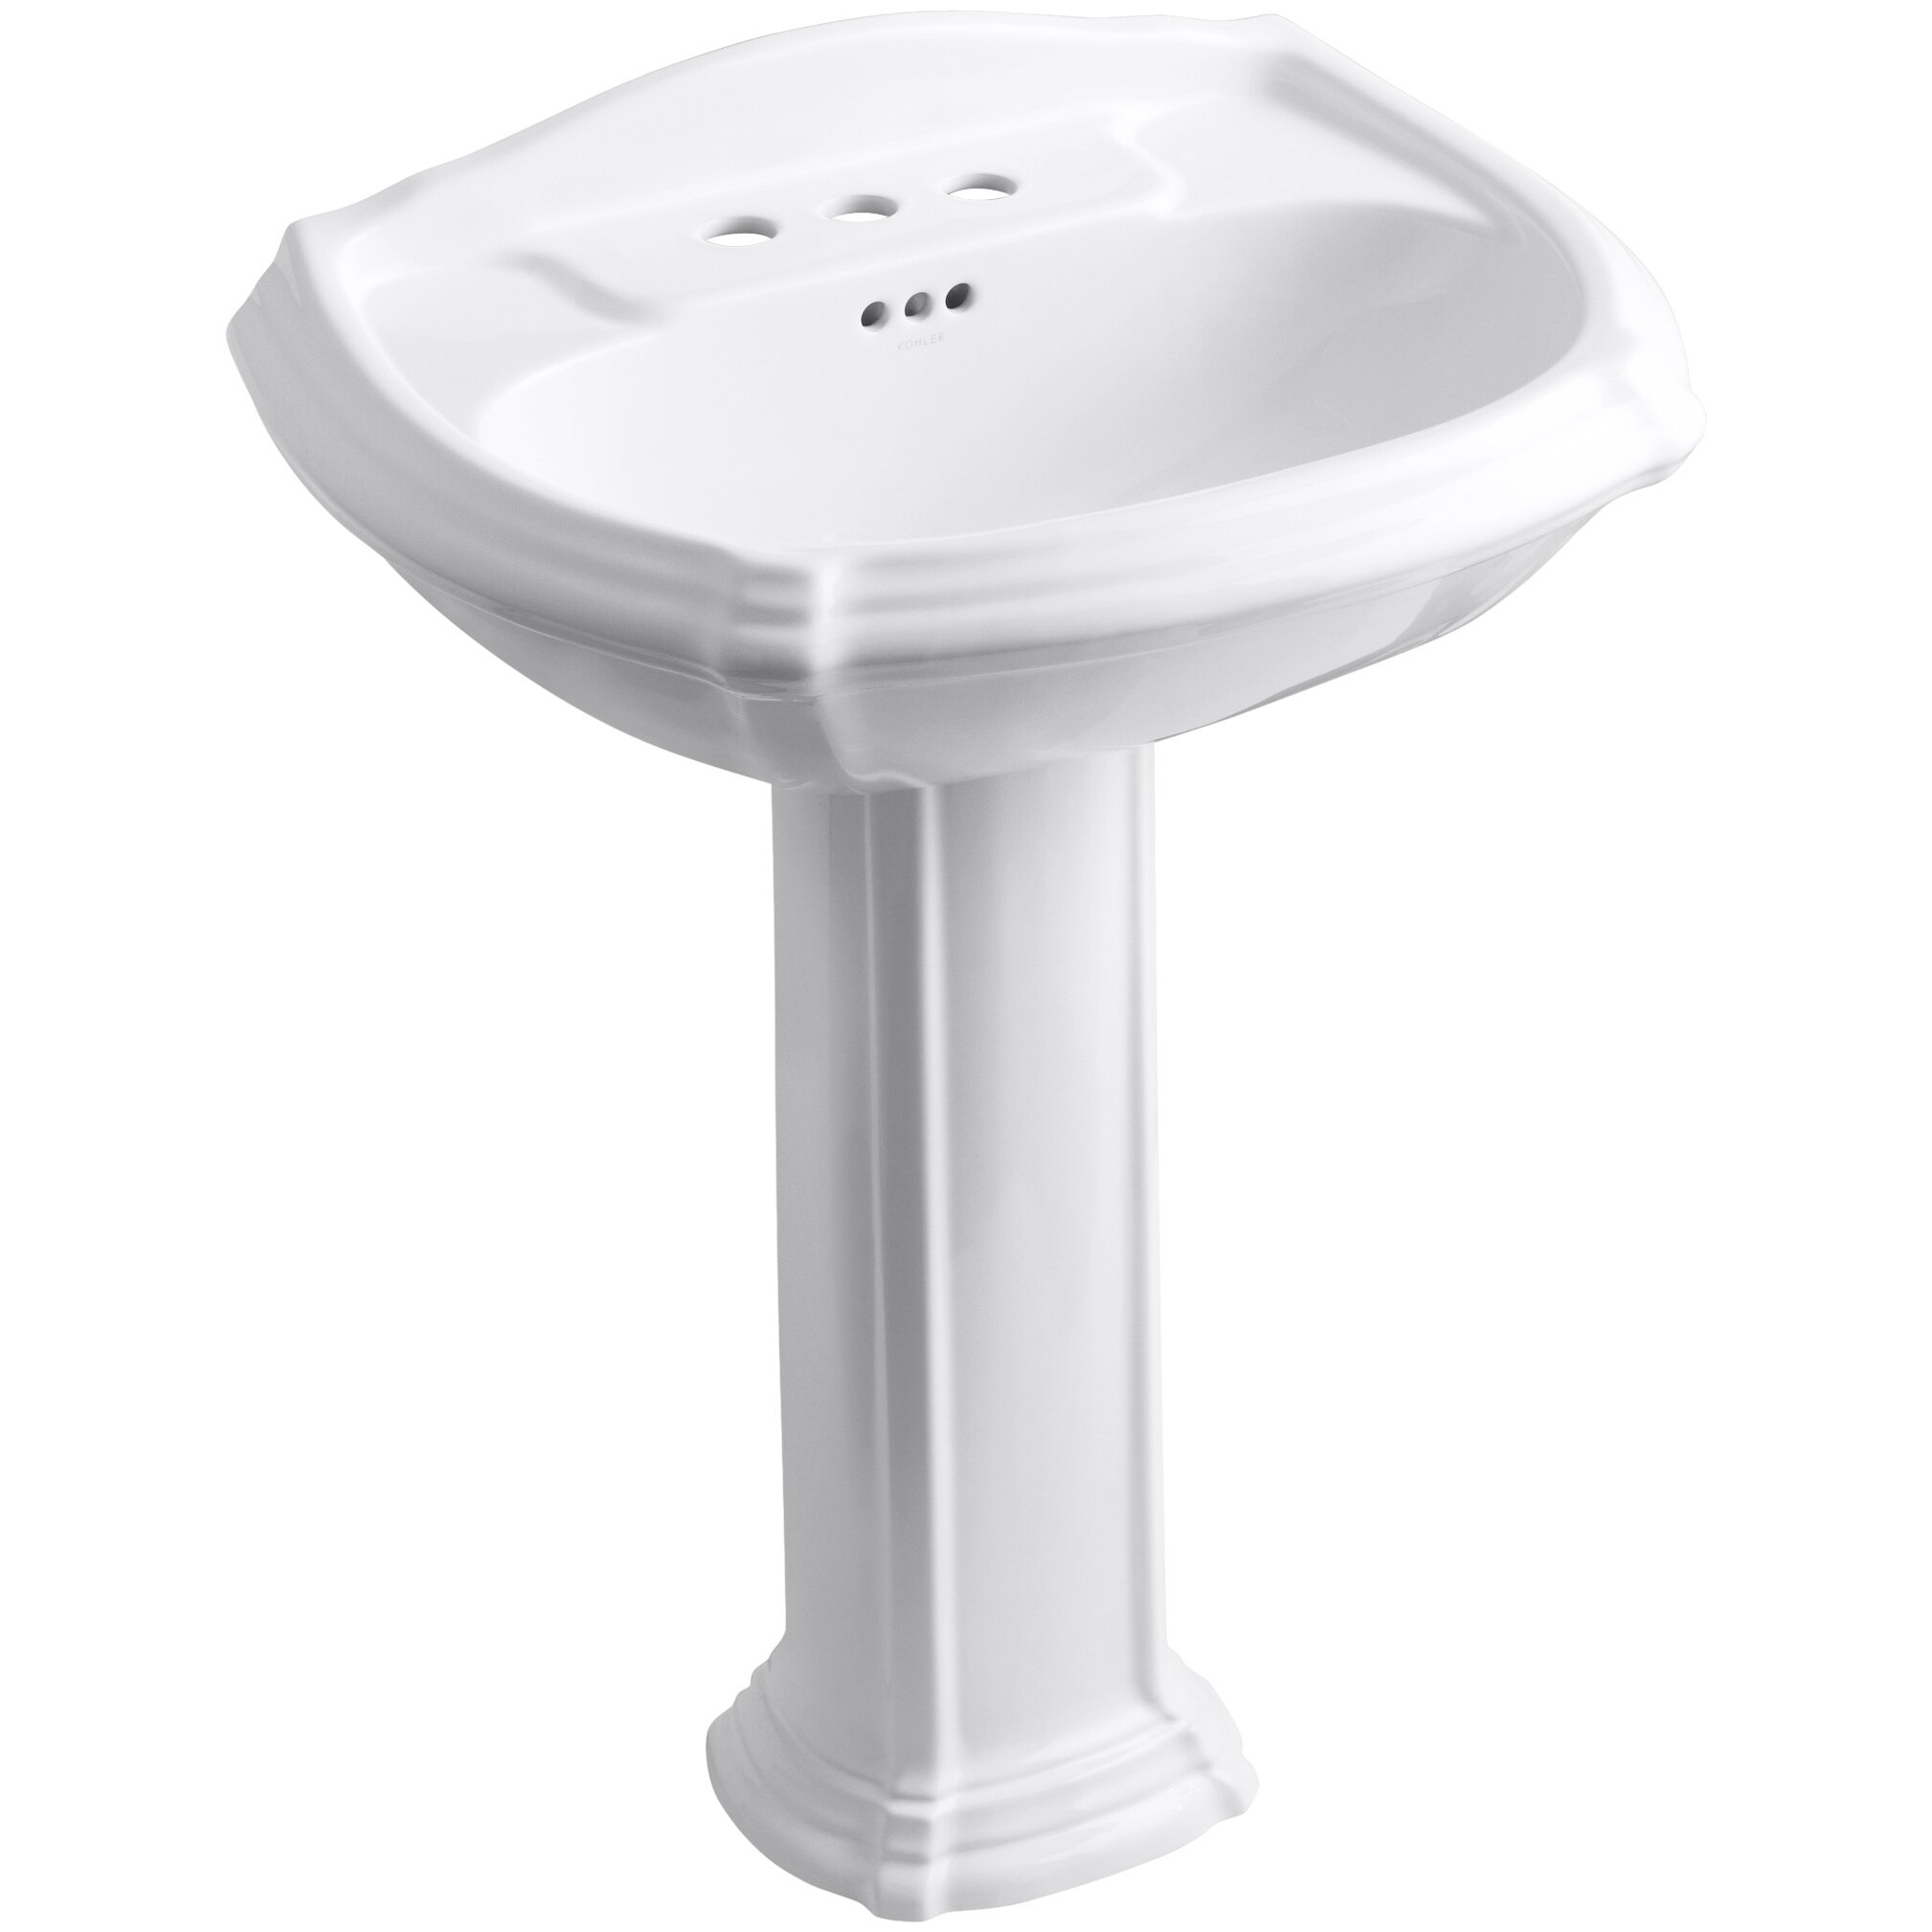 Kohler Portrait Pedestal Bathroom Sink Reviews Wayfair